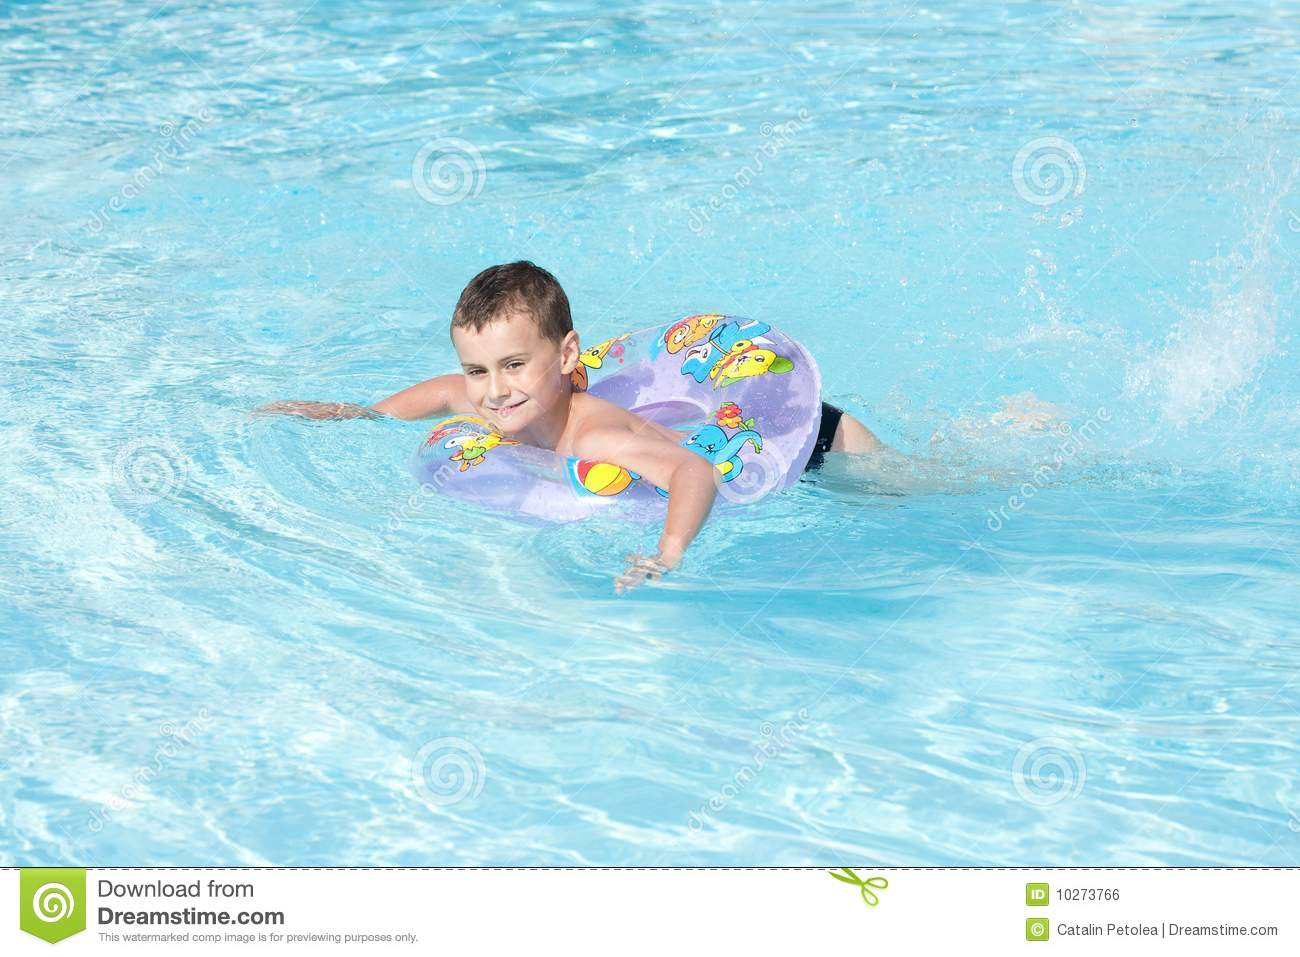 Cute kid swimming in pool royalty free stock image image for Cute pool pictures